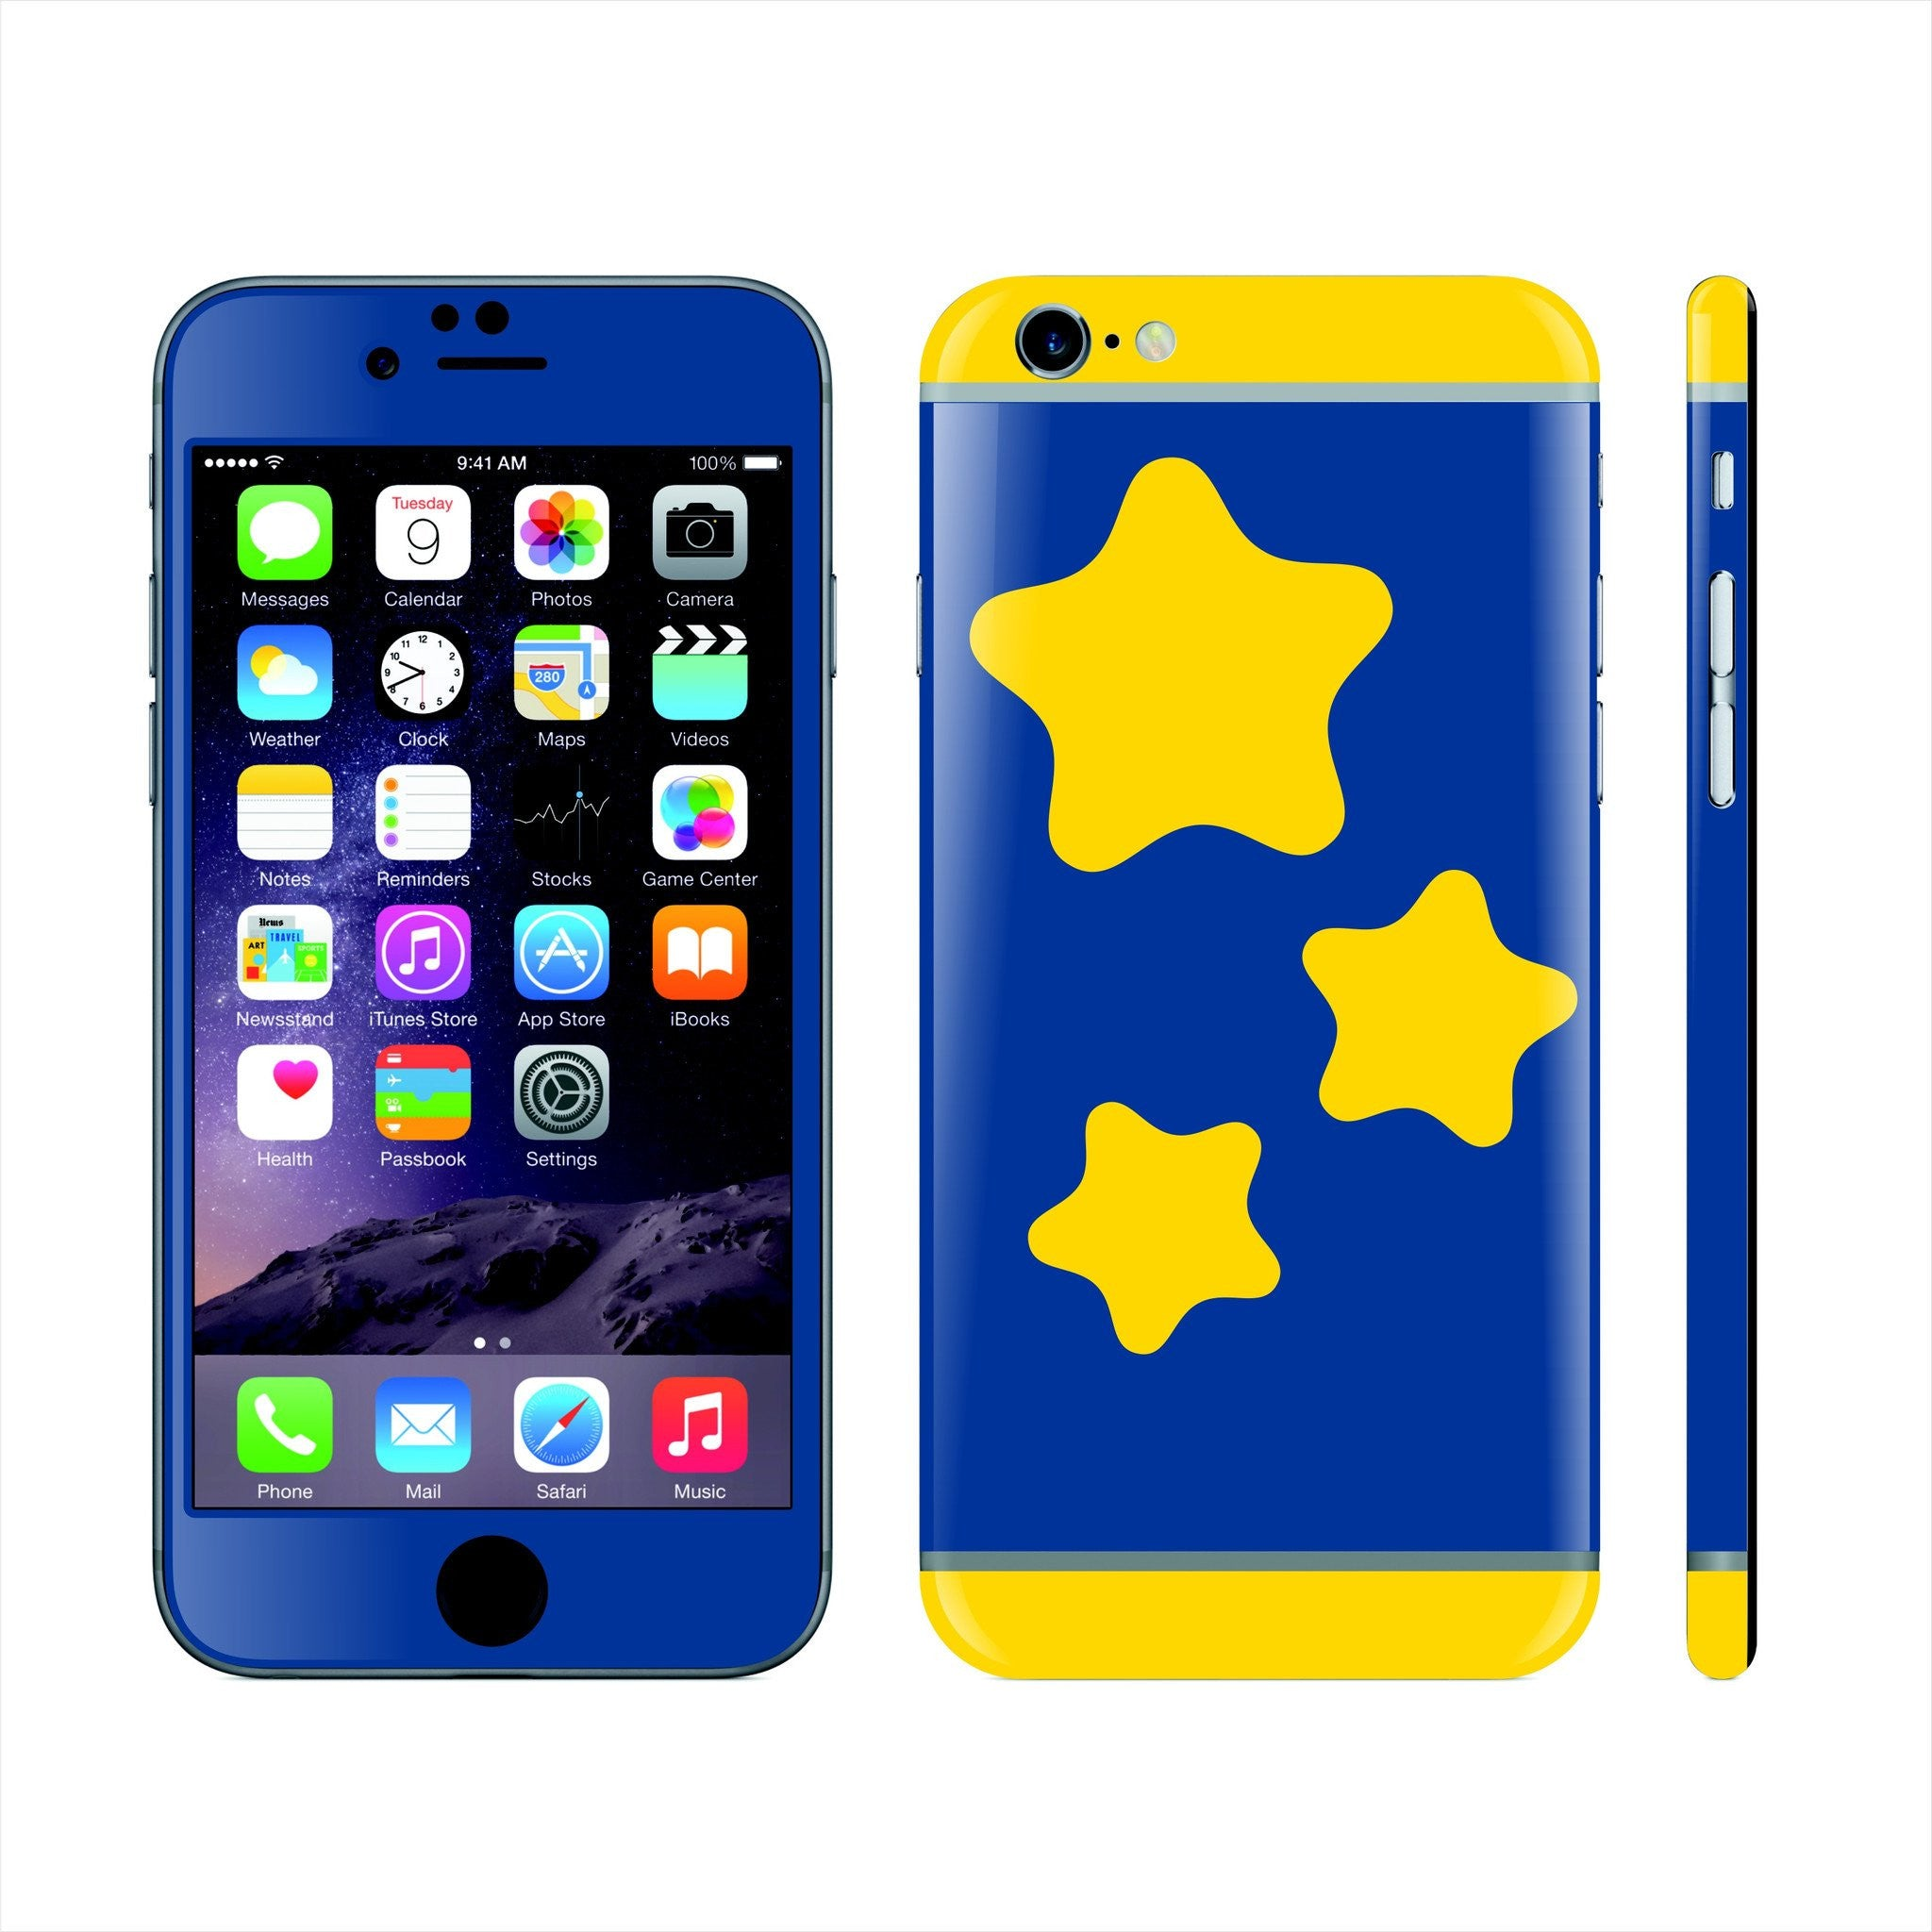 iPhone 6 Custom Colorful Design Edition  Stars 022 Skin Wrap Sticker Cover Decal Protector by EasySkinz